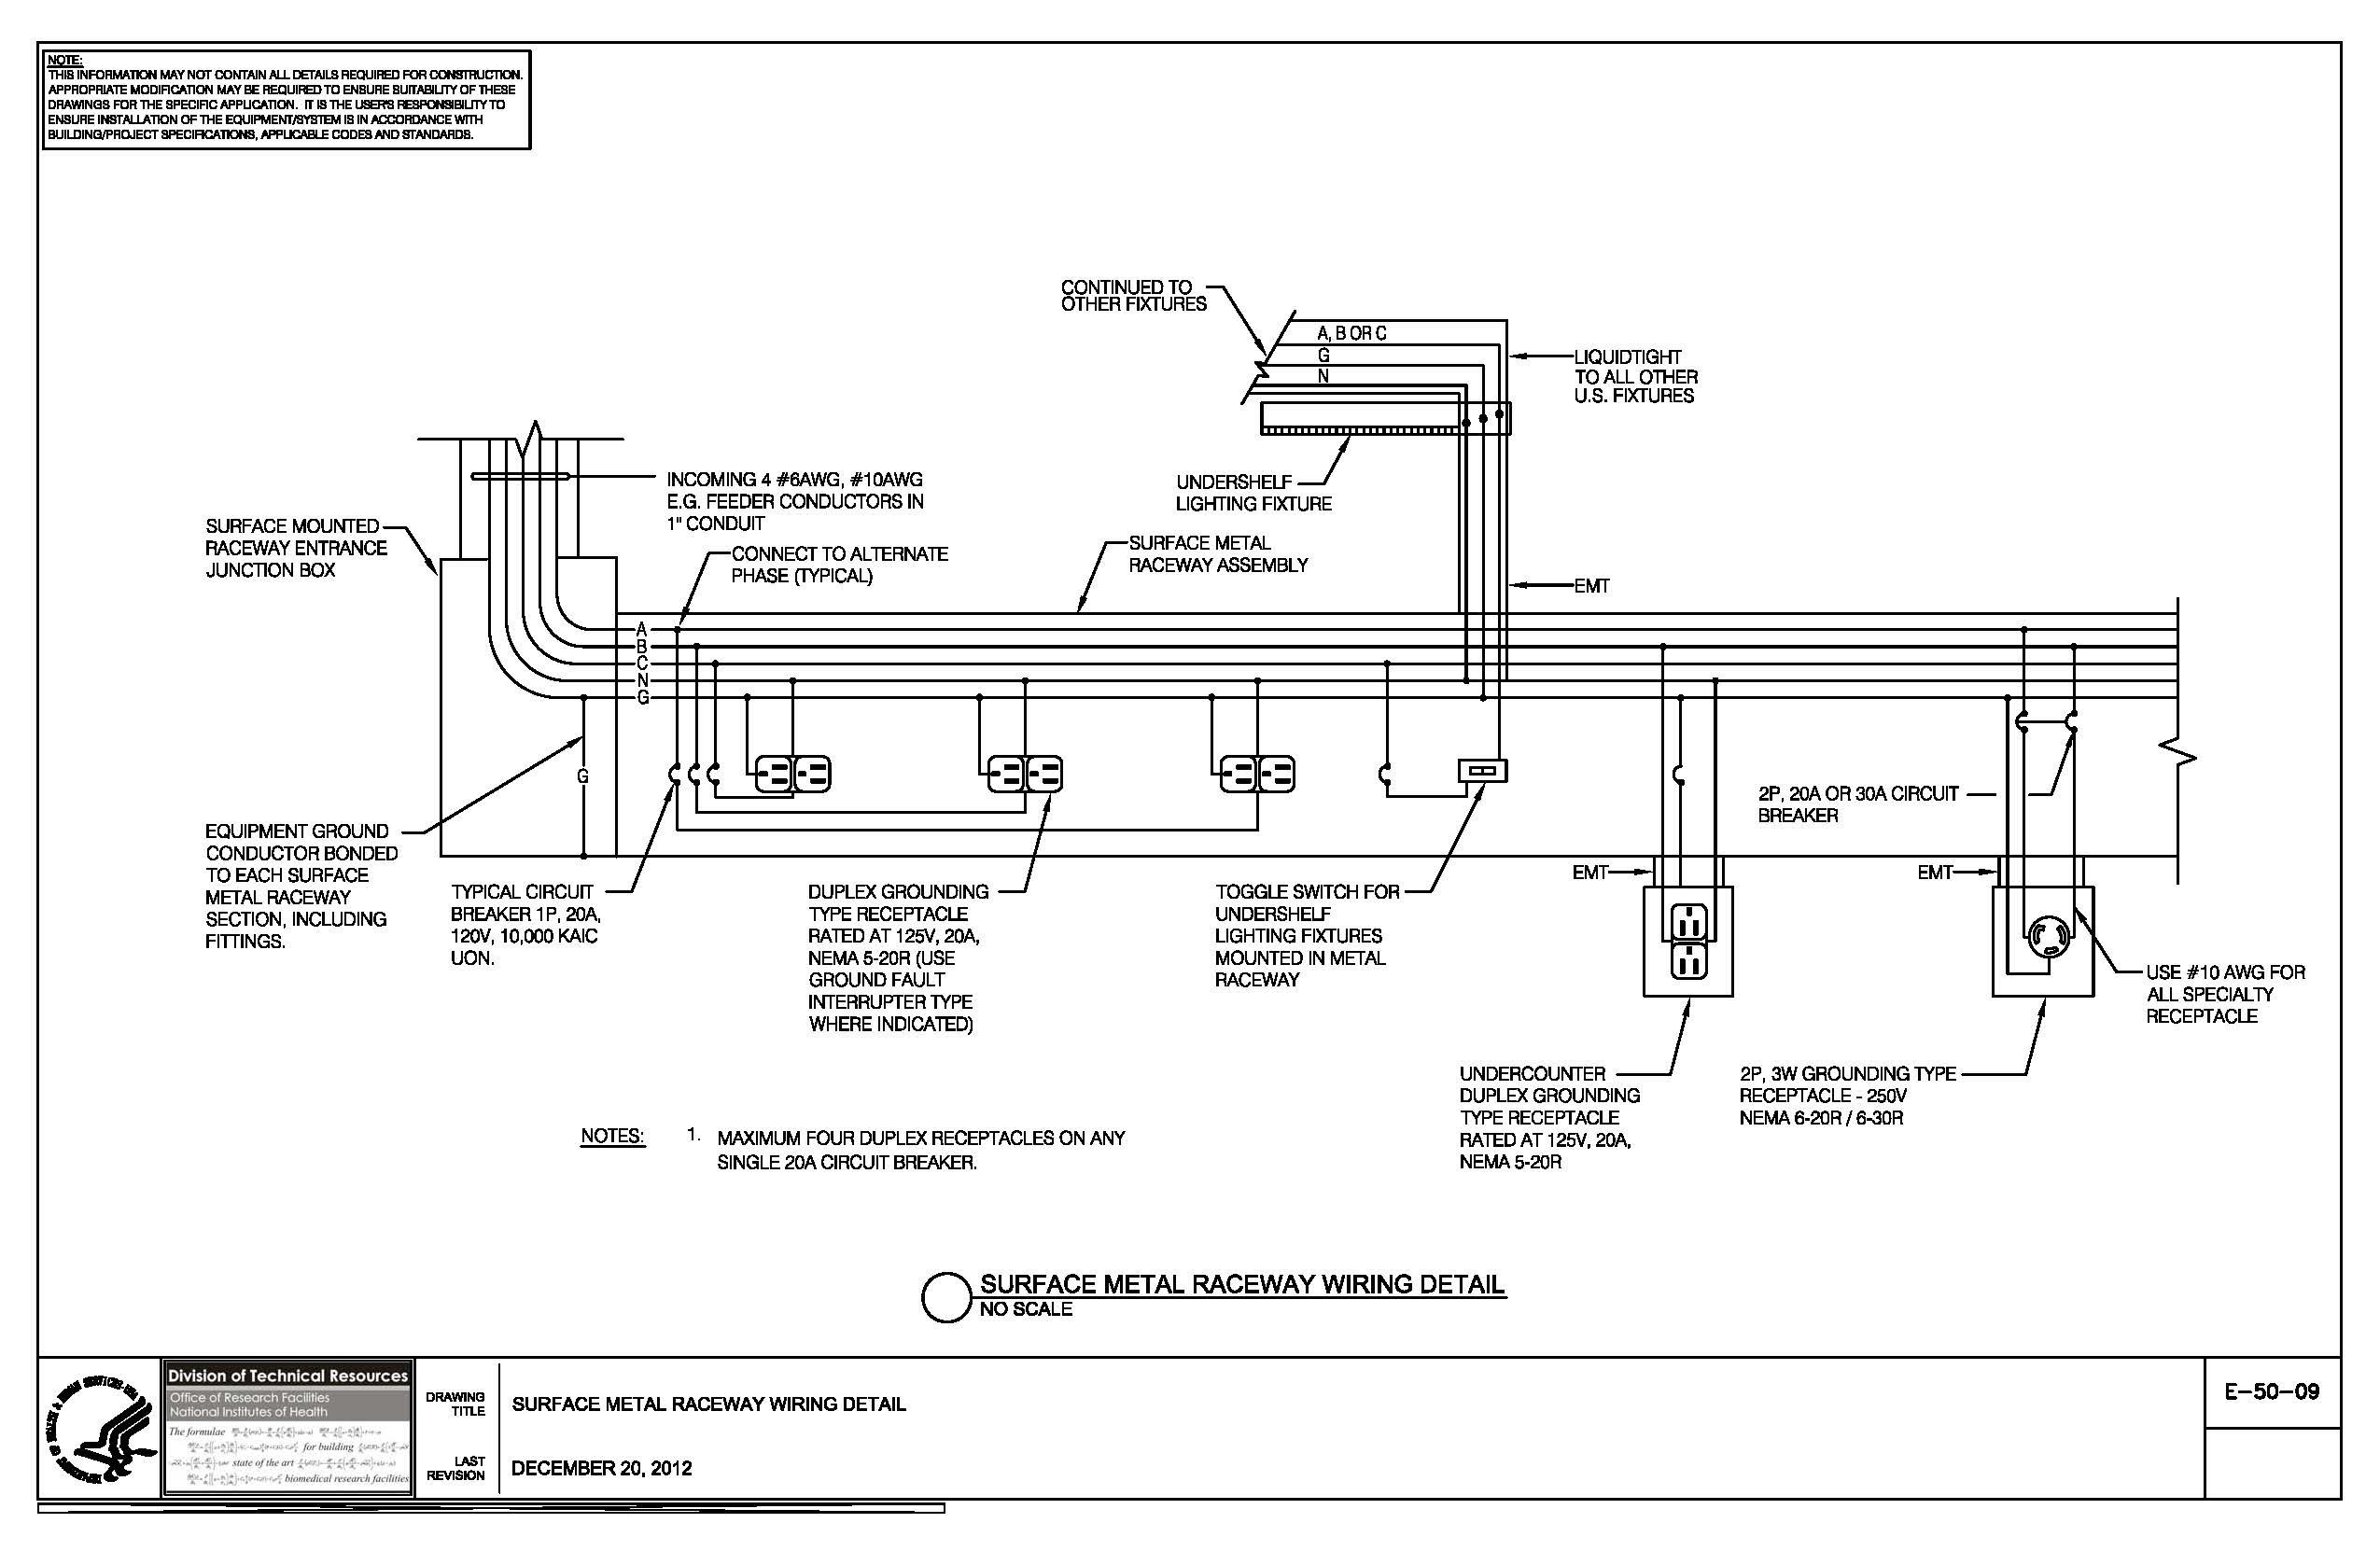 in ground pool electrical wiring diagram Download-swimming pool wiring diagram Collection of E 50 09 Surface Metal Raceway Wiring Detail NIH DOWNLOAD Wiring Diagram Detail Name swimming pool 17-m